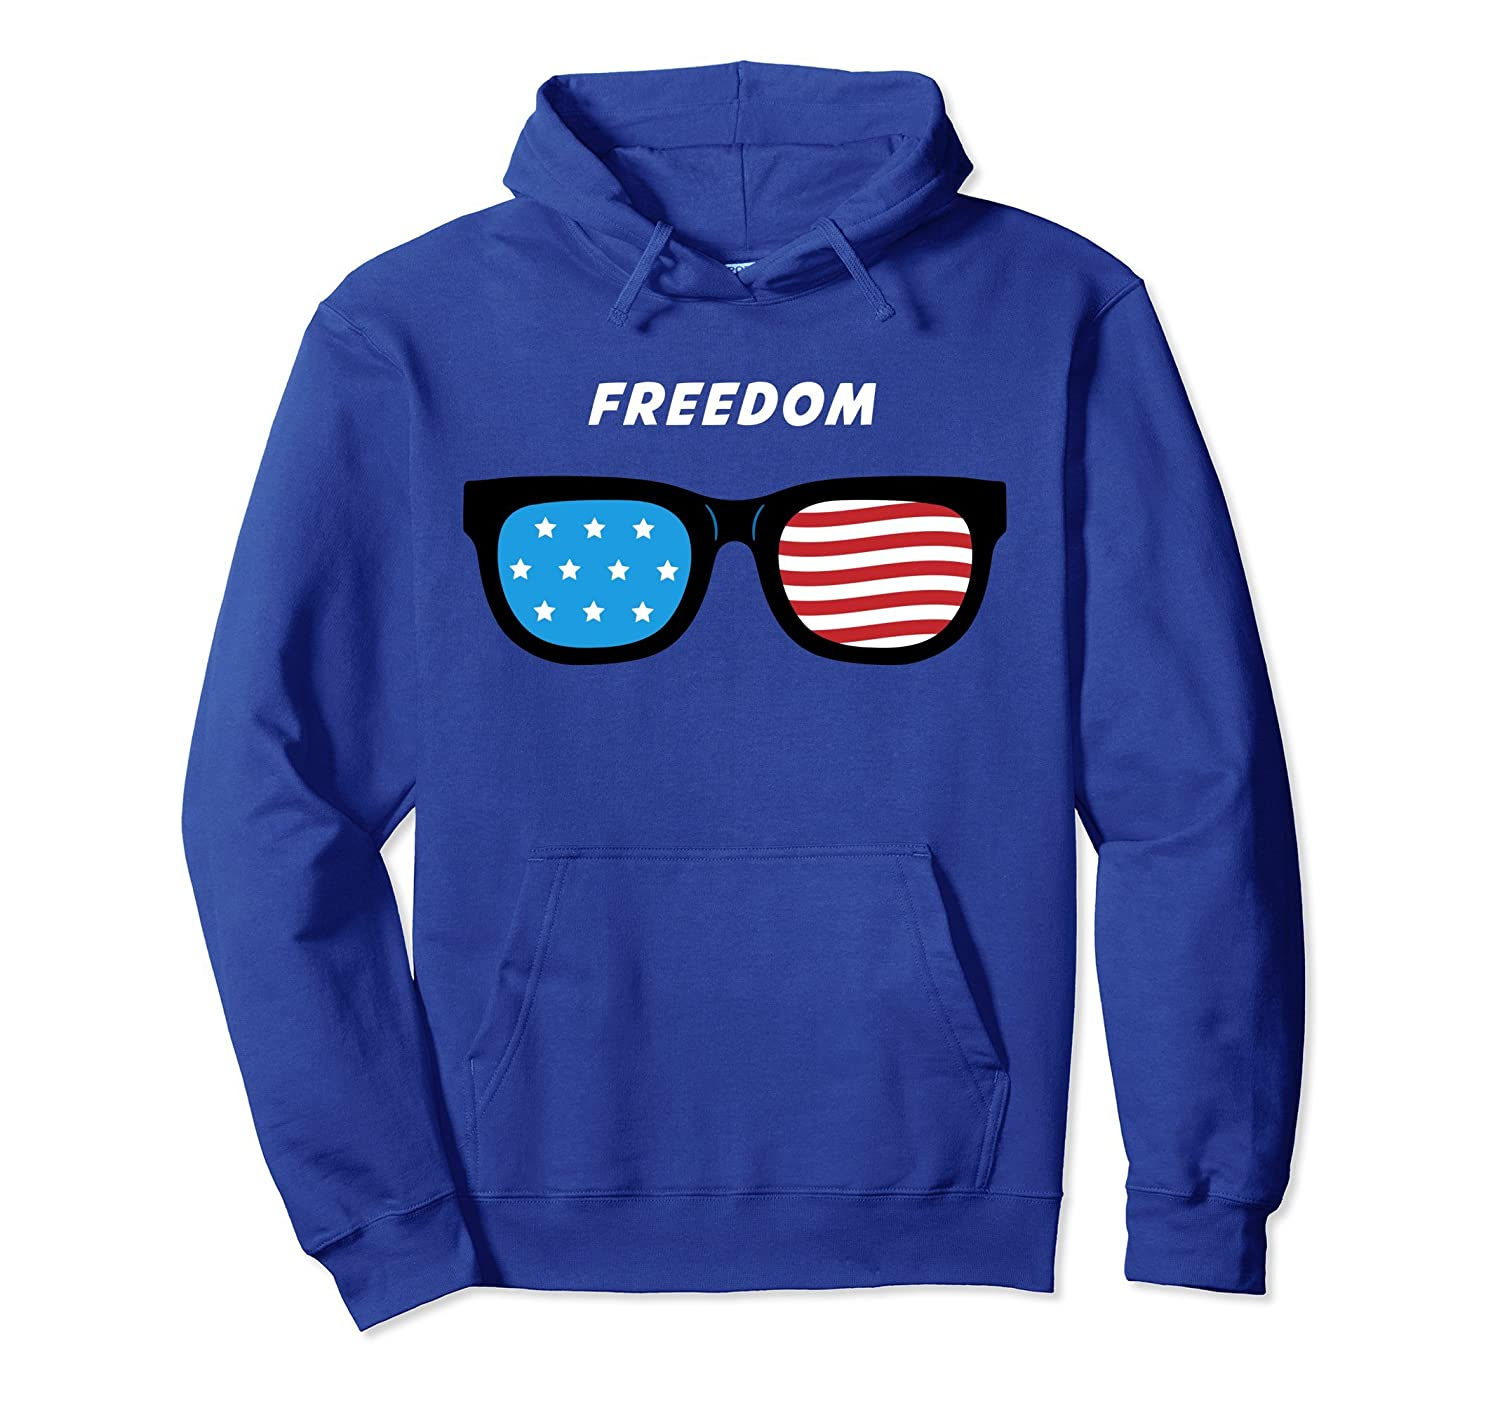 4th July Shirts for Men - Patriotic Shirts Freedom Hoodie-mt